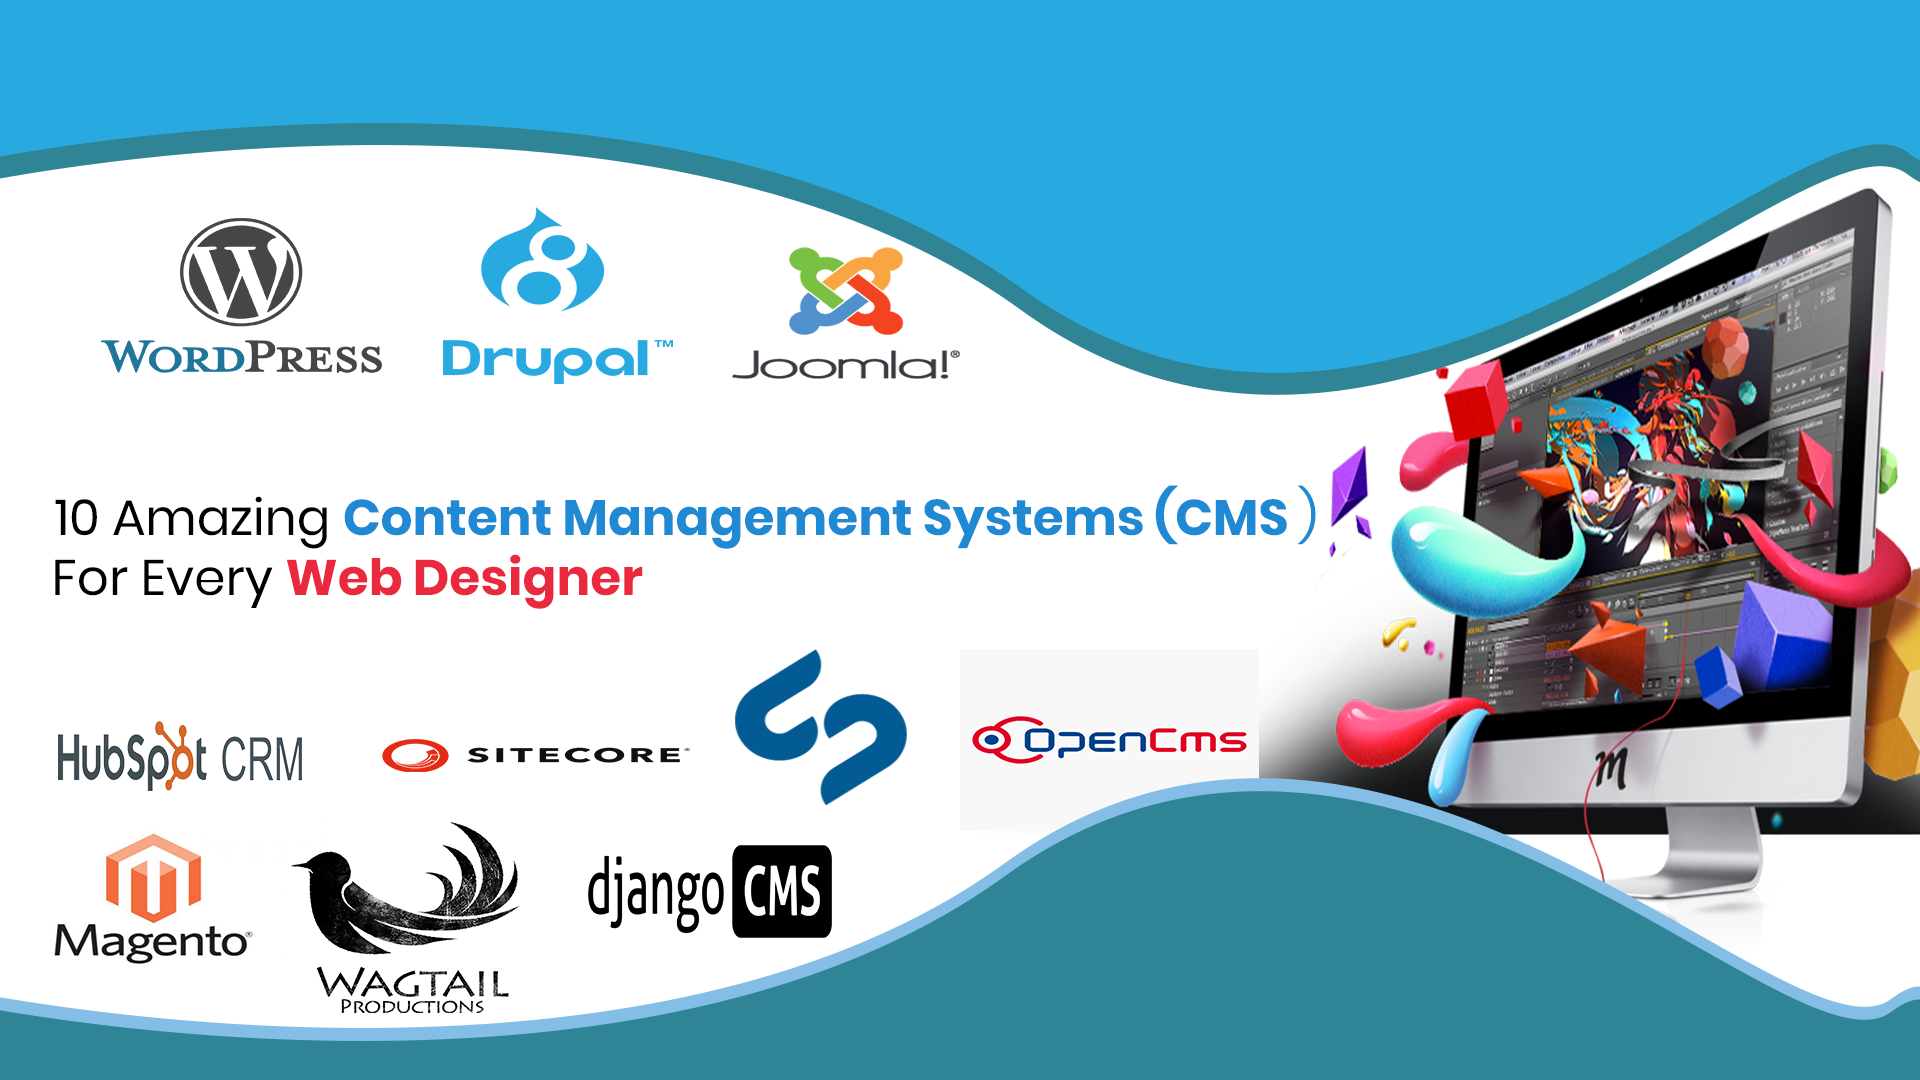 Top 10 Amazing Content Management Systems For Every Web Designer